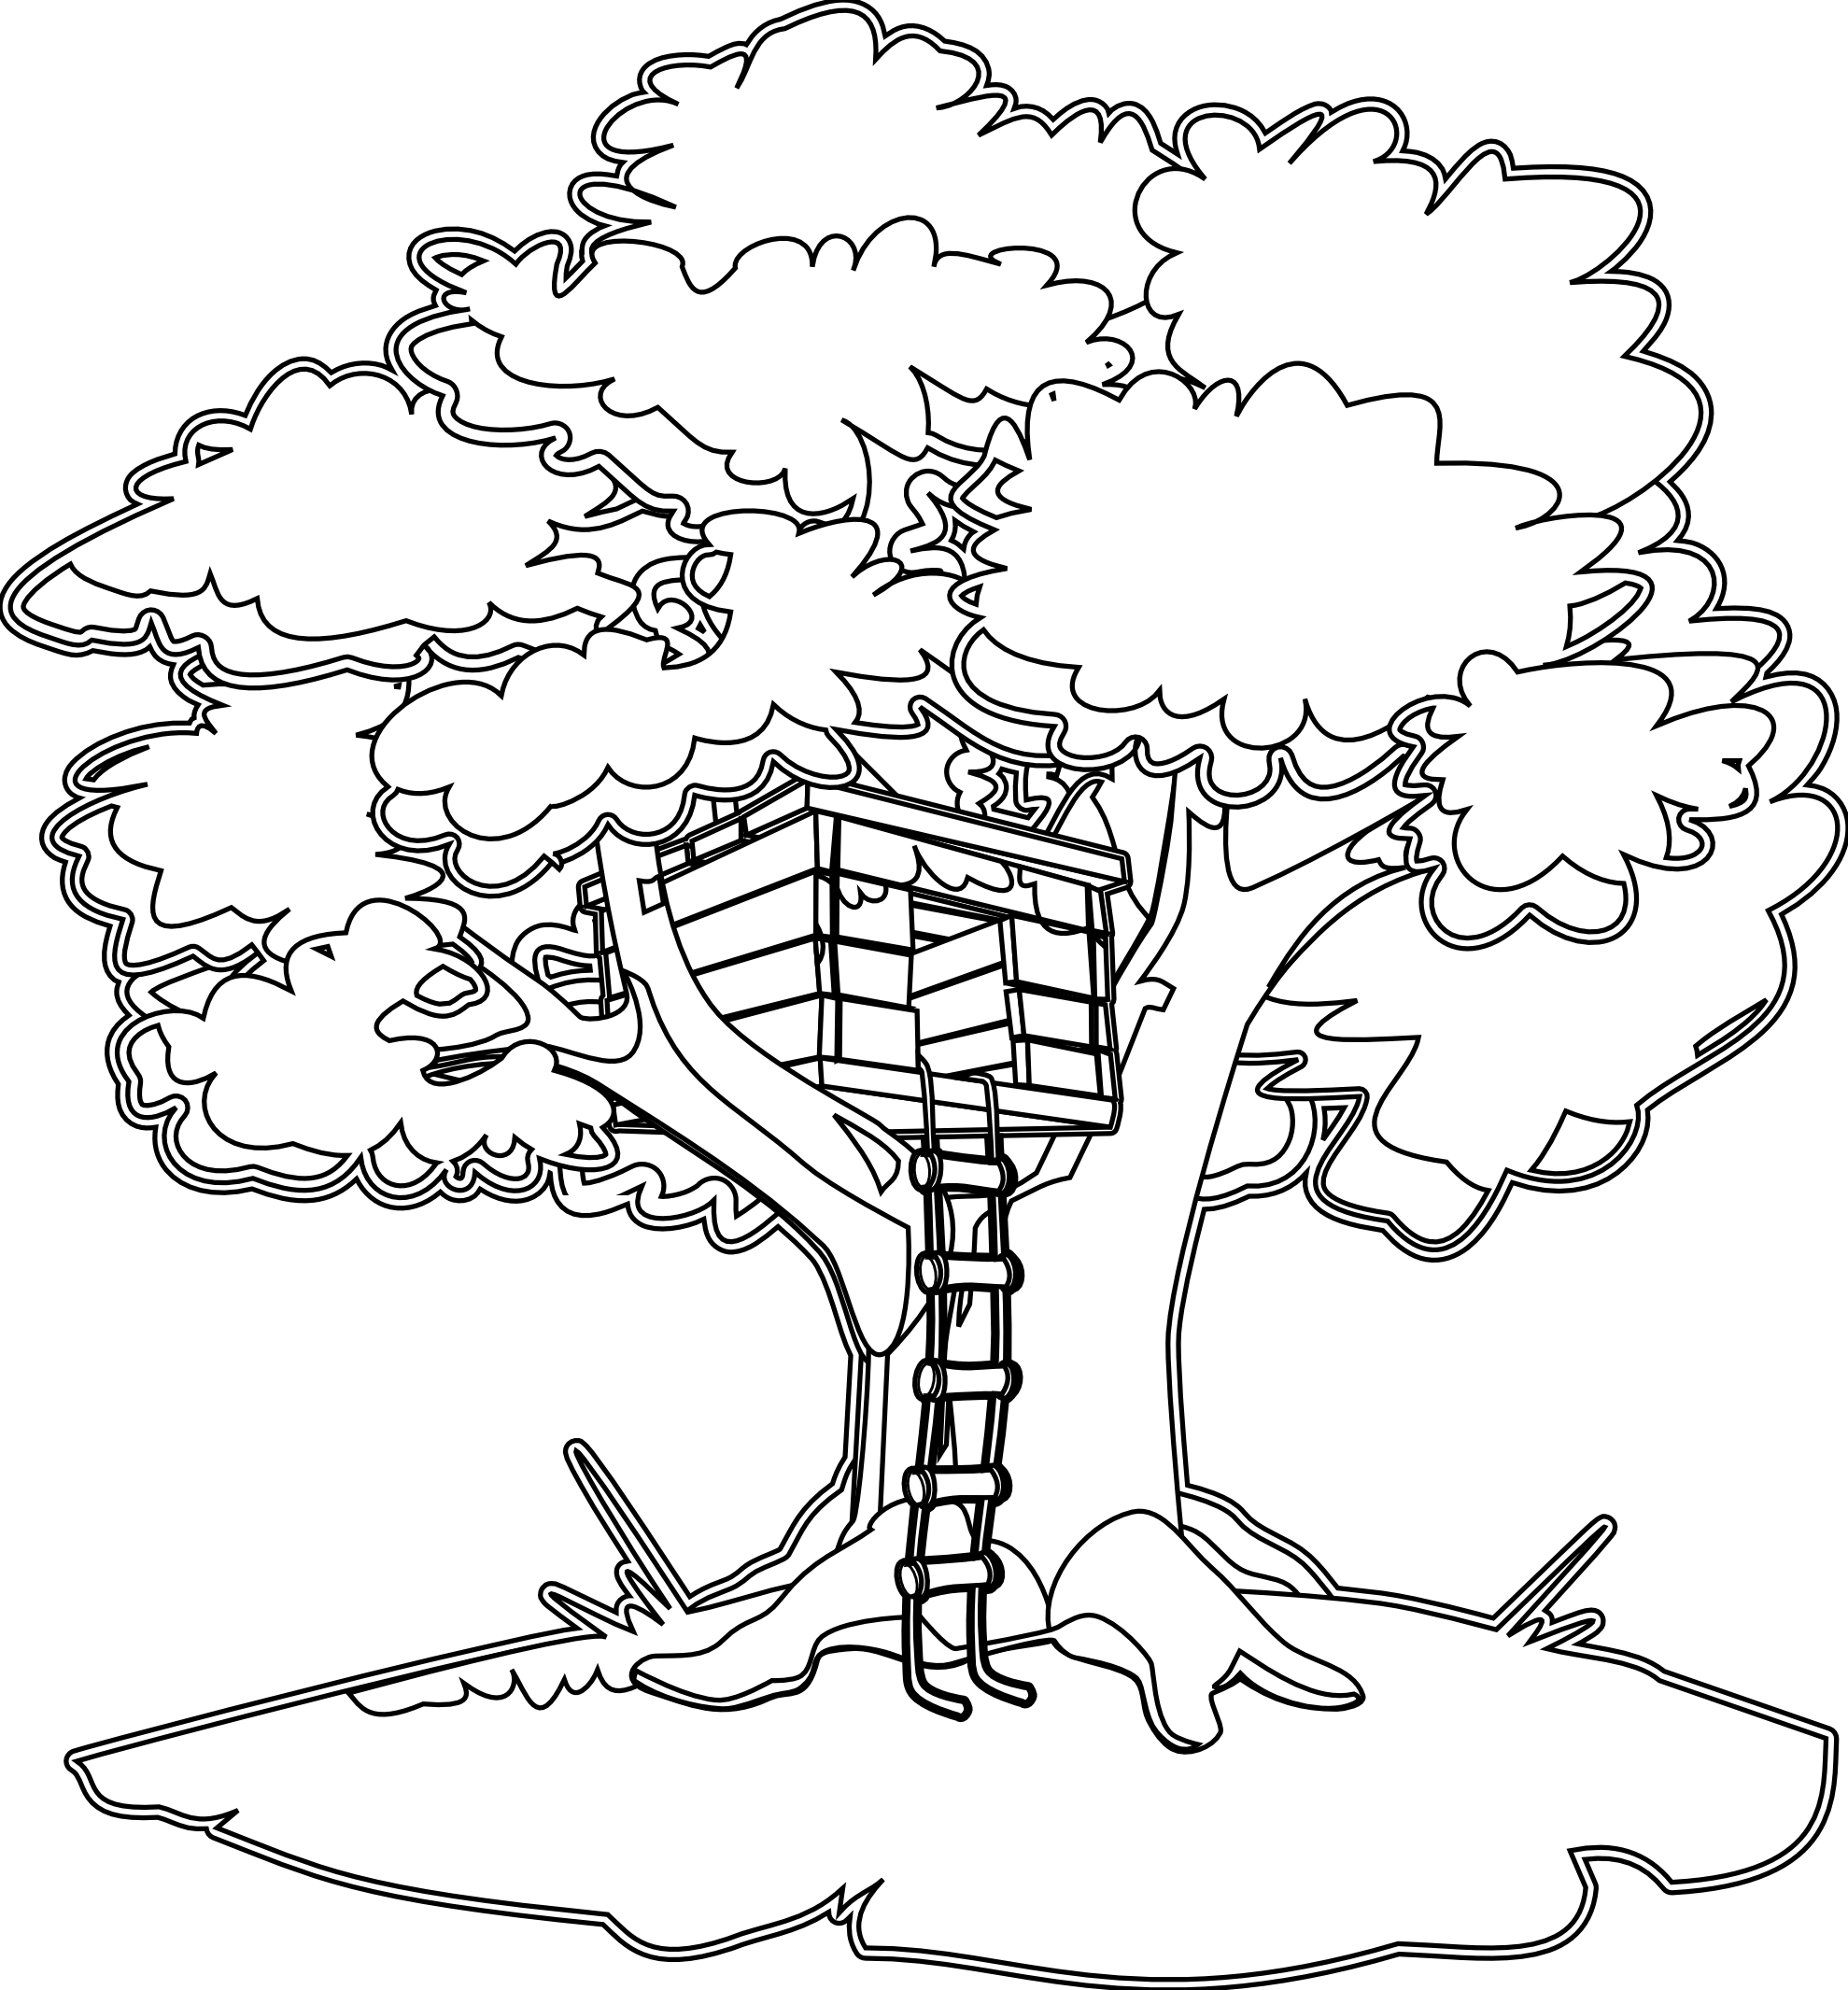 tree coloring pages family trees coloring pages download and print for free coloring pages tree